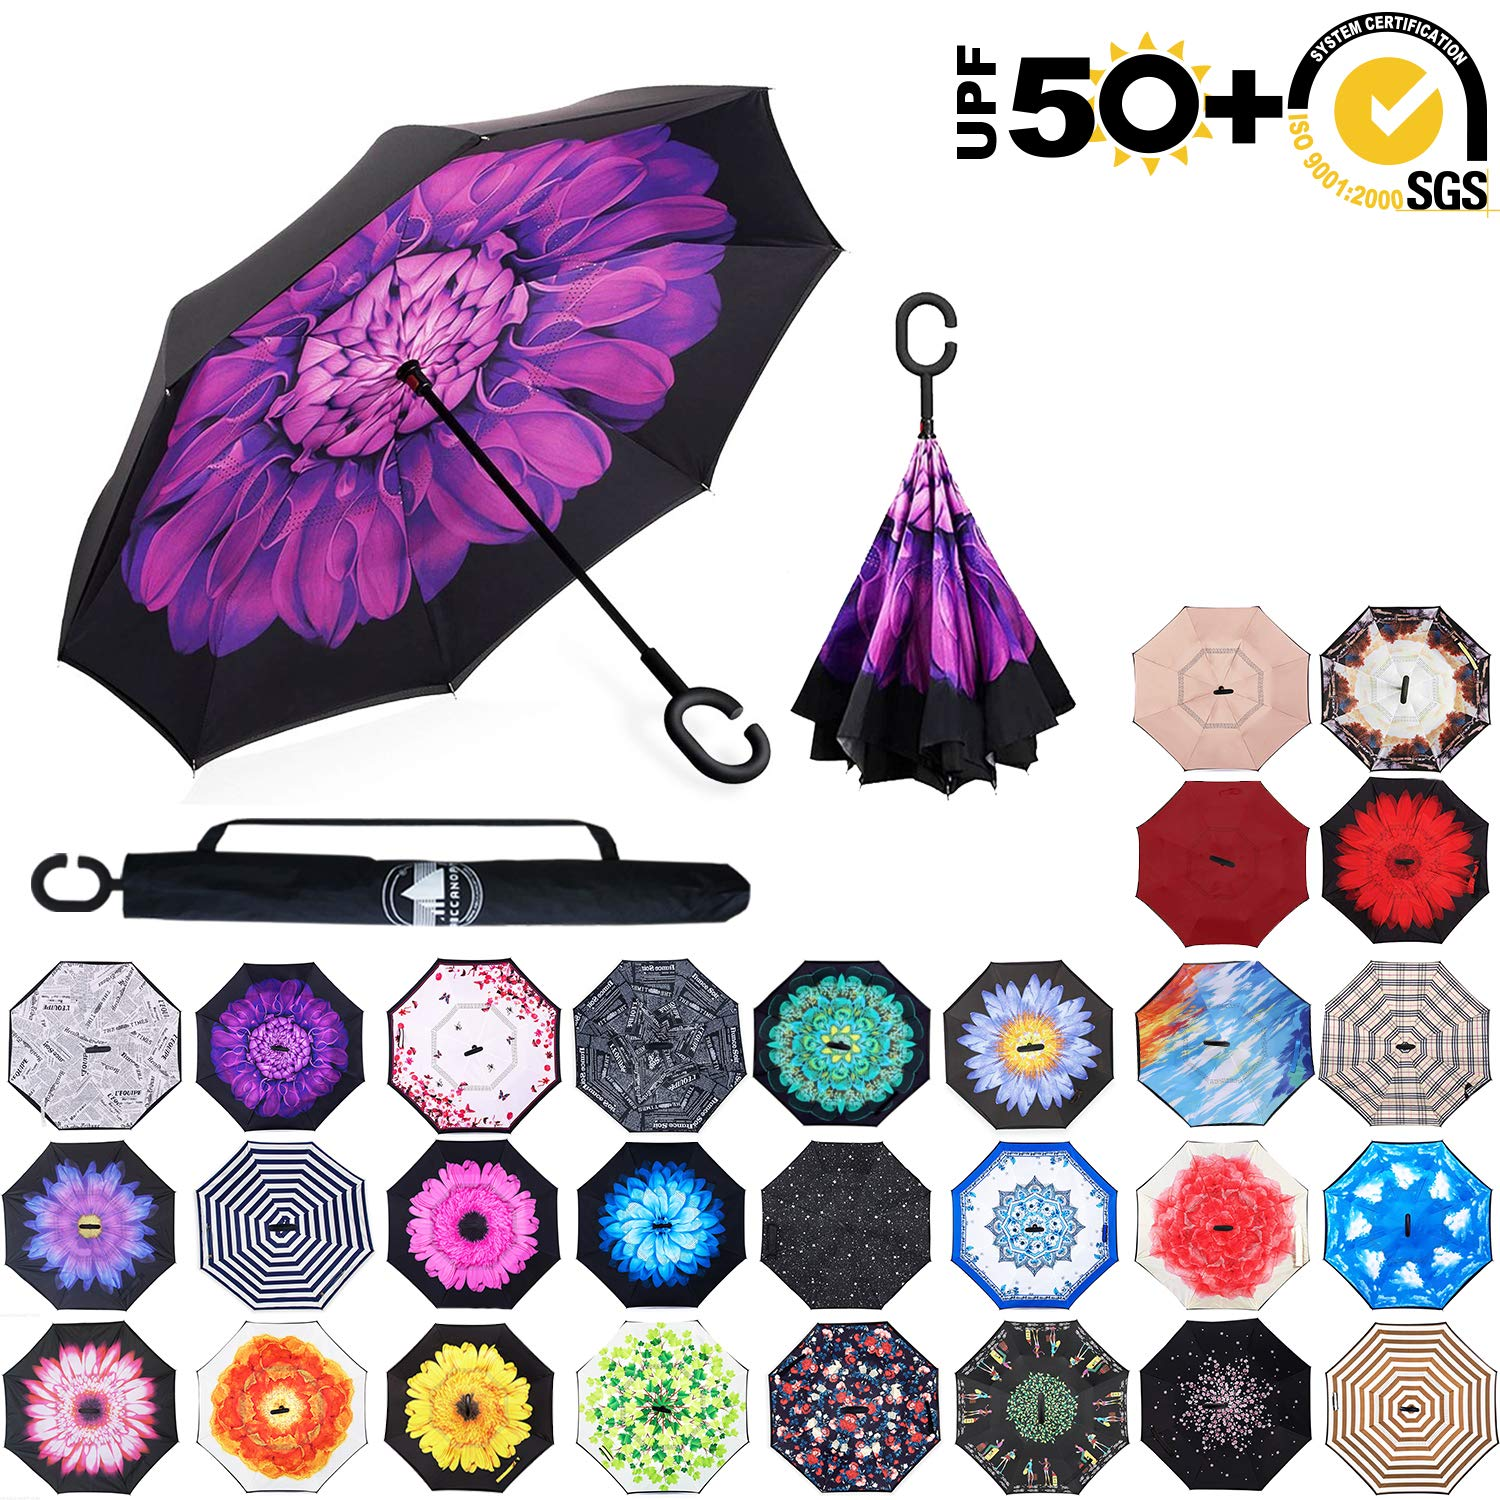 ABCCANOPY Inverted Umbrella,Double Layer Reverse Rain&Wind Teflon Repellent Umbrella for Car and Outdoor Use, Windproof UPF 50+ Big Straight Umbrella with C-Shaped Handle, Violet Flower by ABCCANOPY